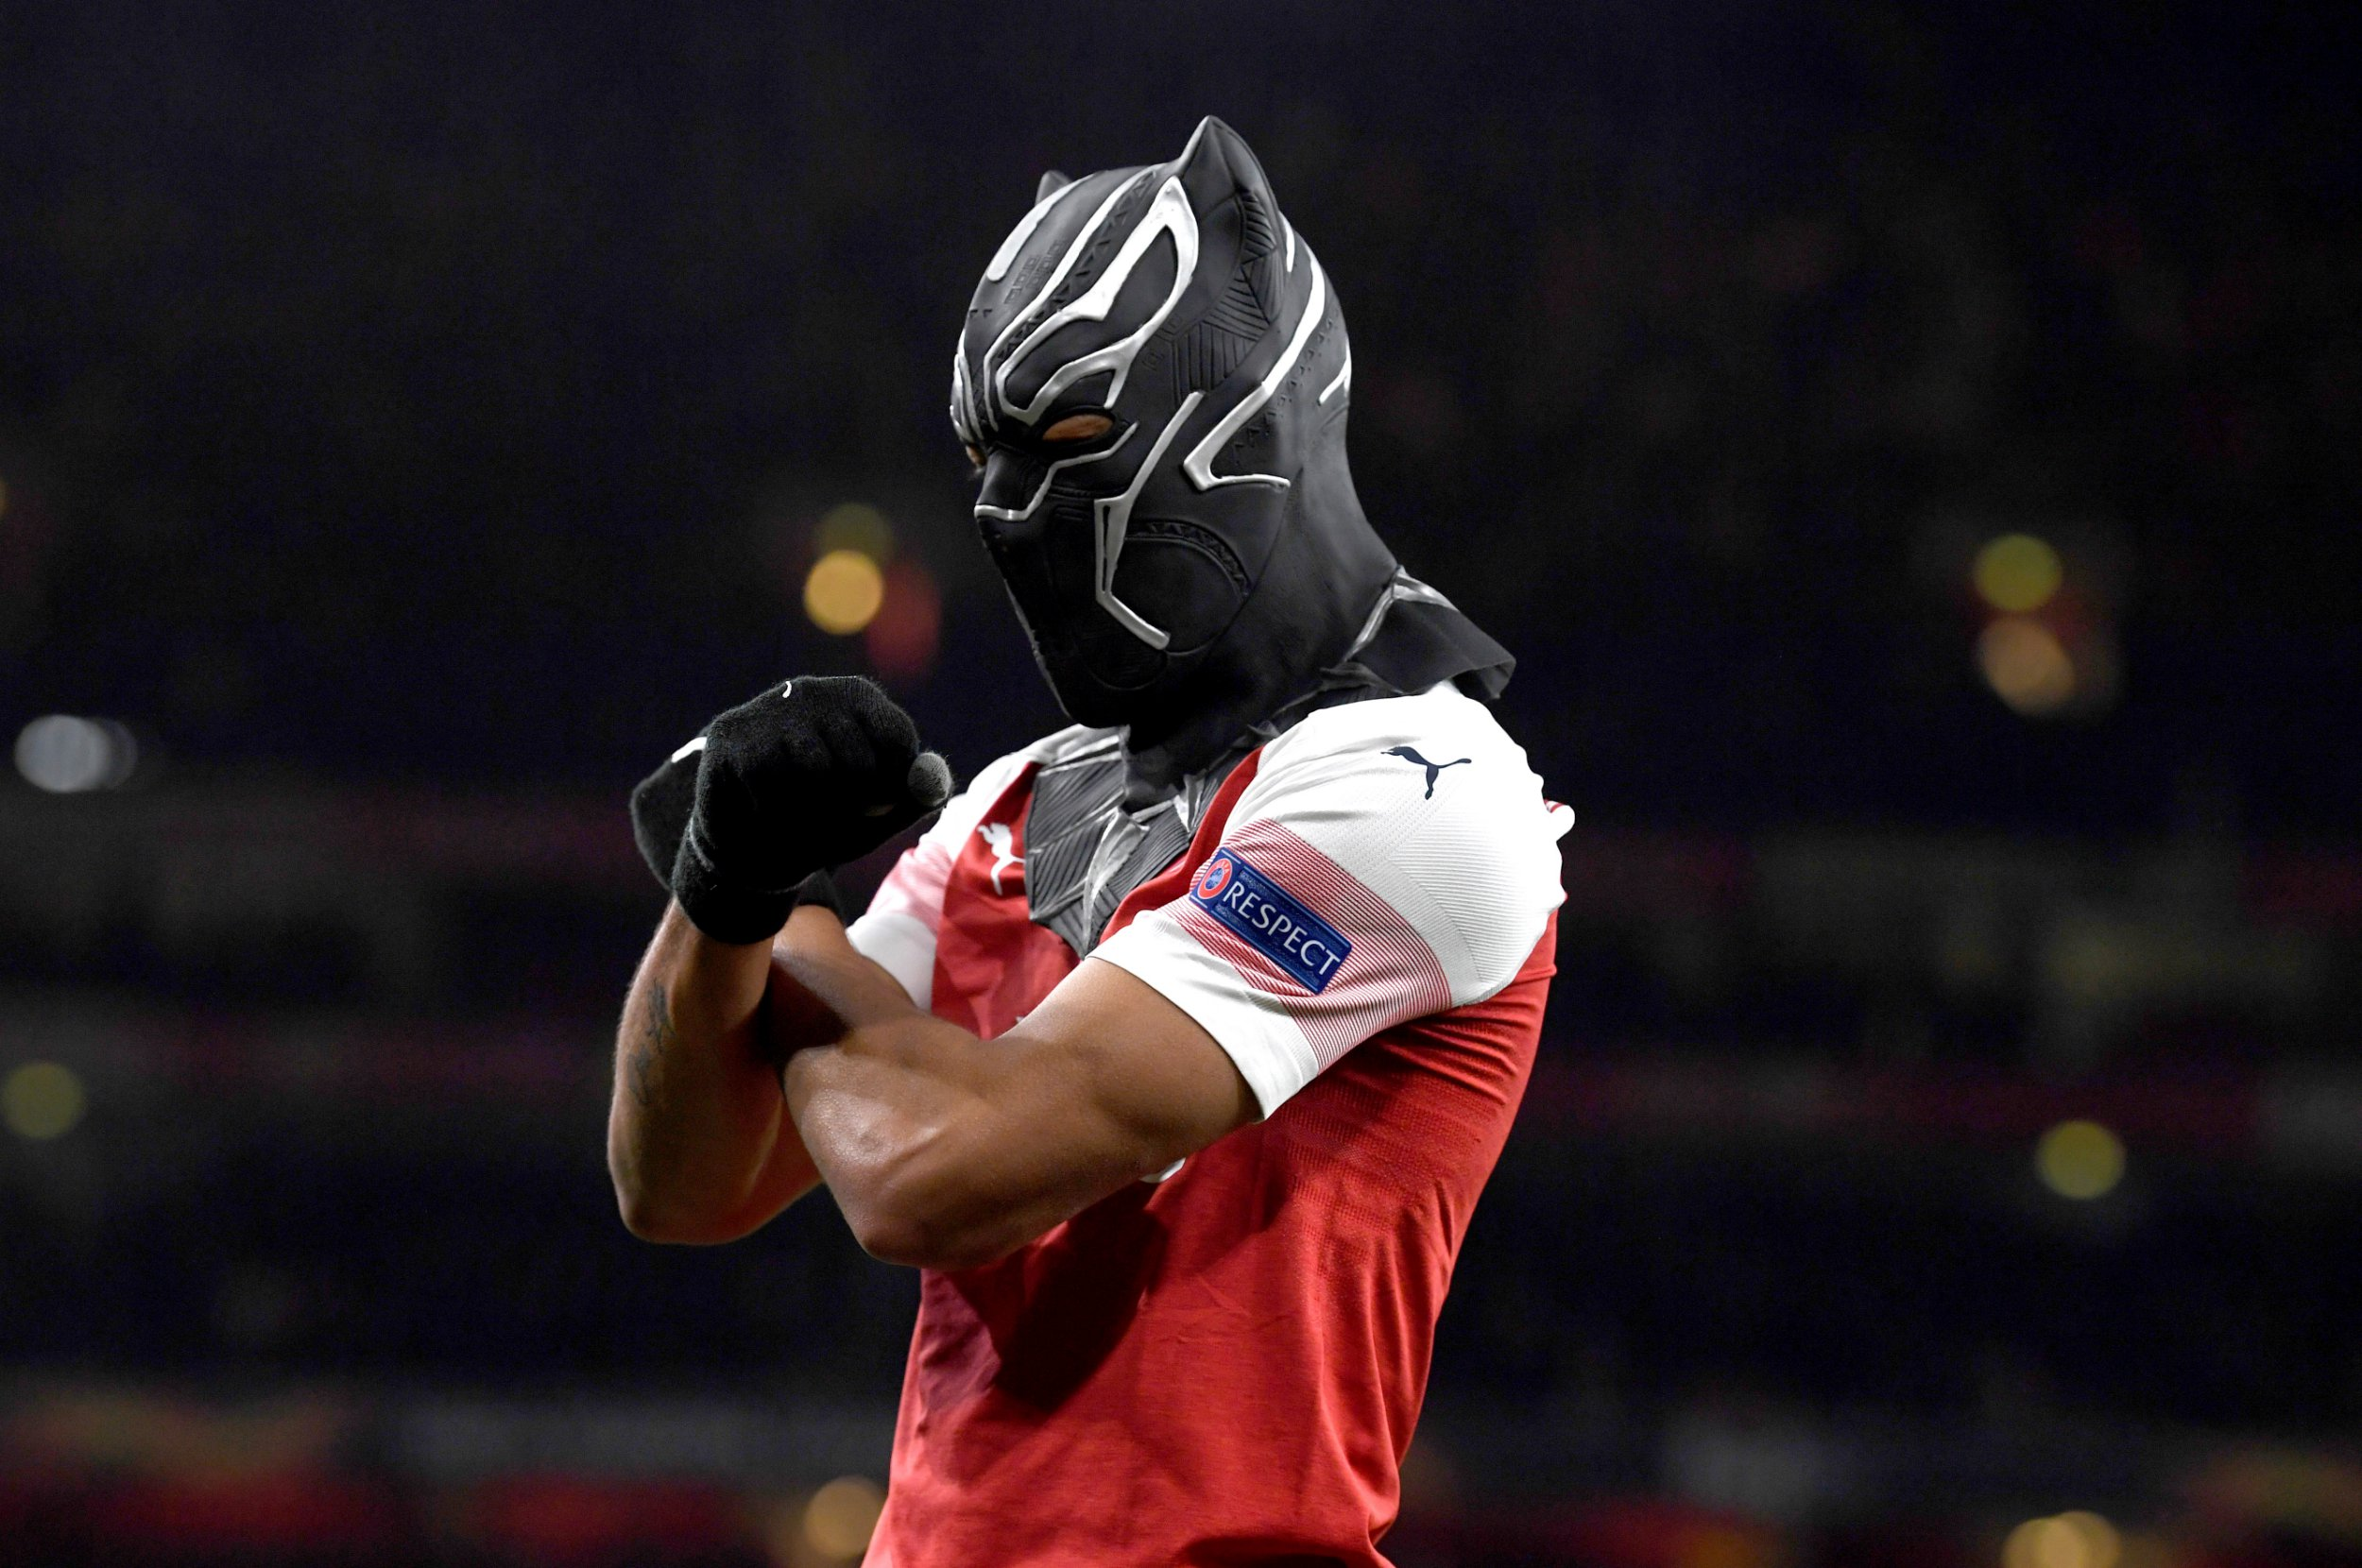 epa07437766 Arsenal's Pierre-Emerick Aubameyang wears a mask as he celebrates scoring the 3-0 goal during the UEFA Europa League soccer match between Arsenal and Stade Rennes at the Emirates Stadium in London, Britain, 14 March 2019. EPA/NEIL HALL